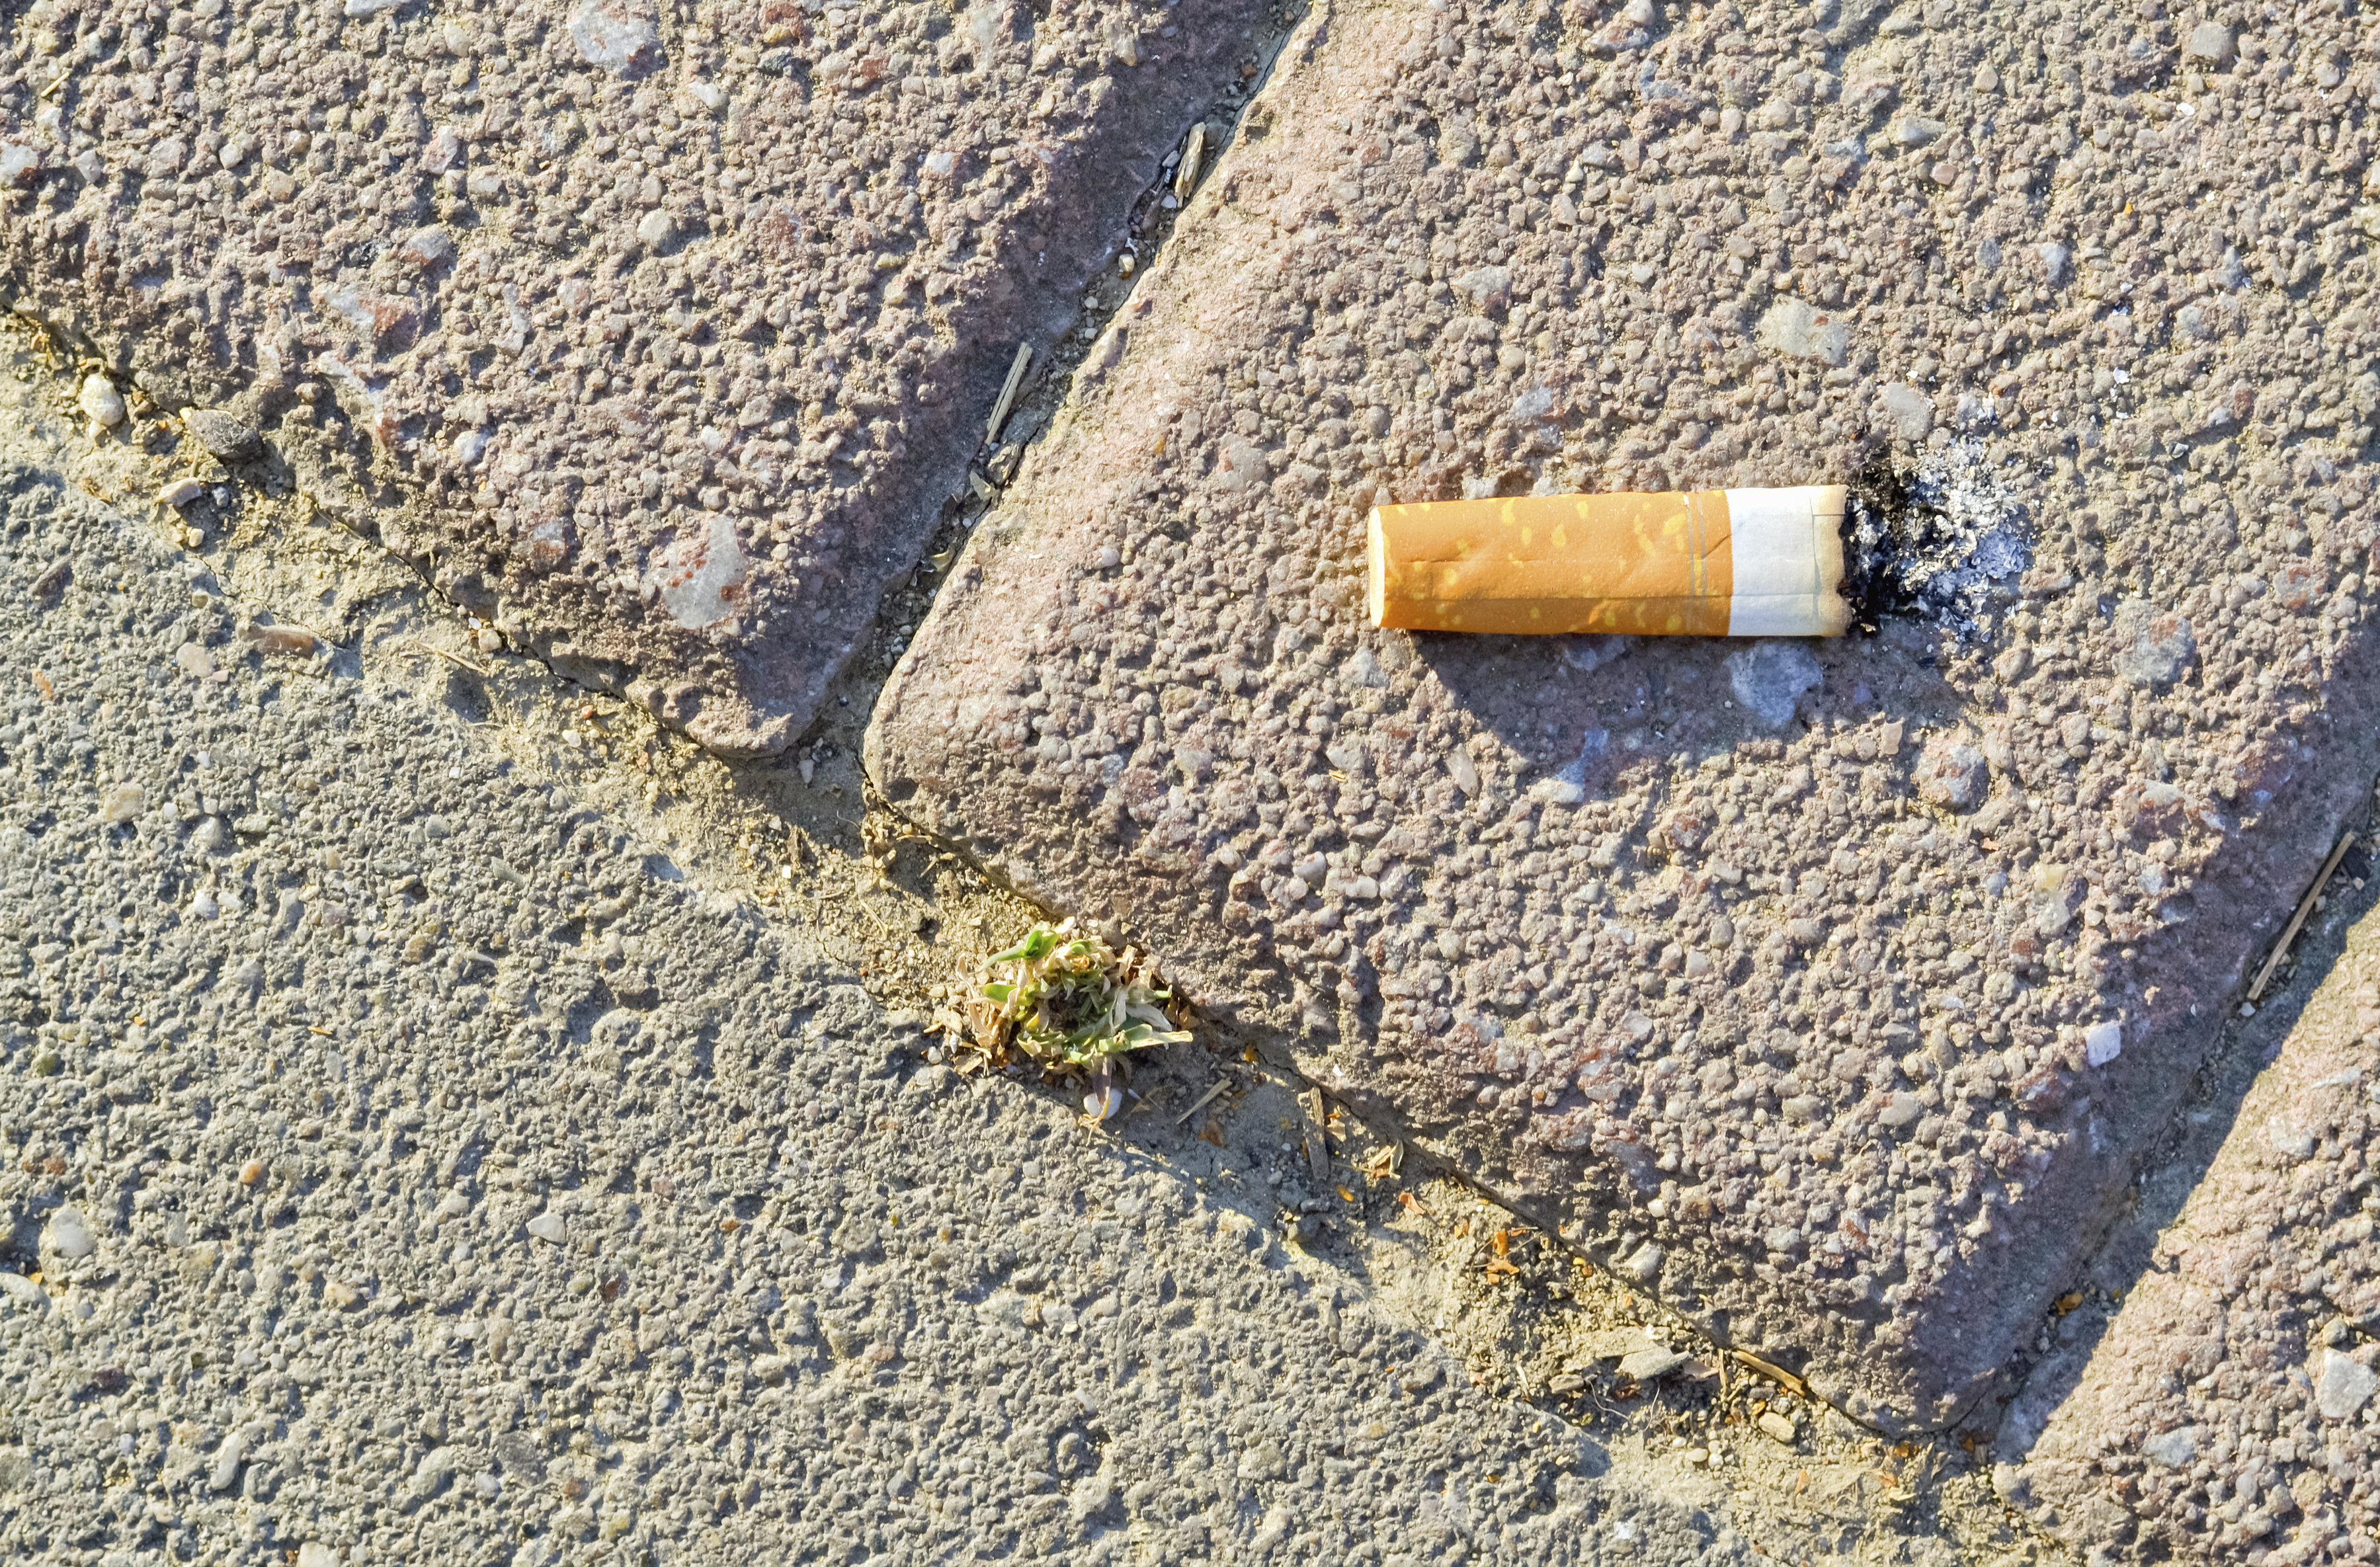 Former director fined for throwing cigarette butt